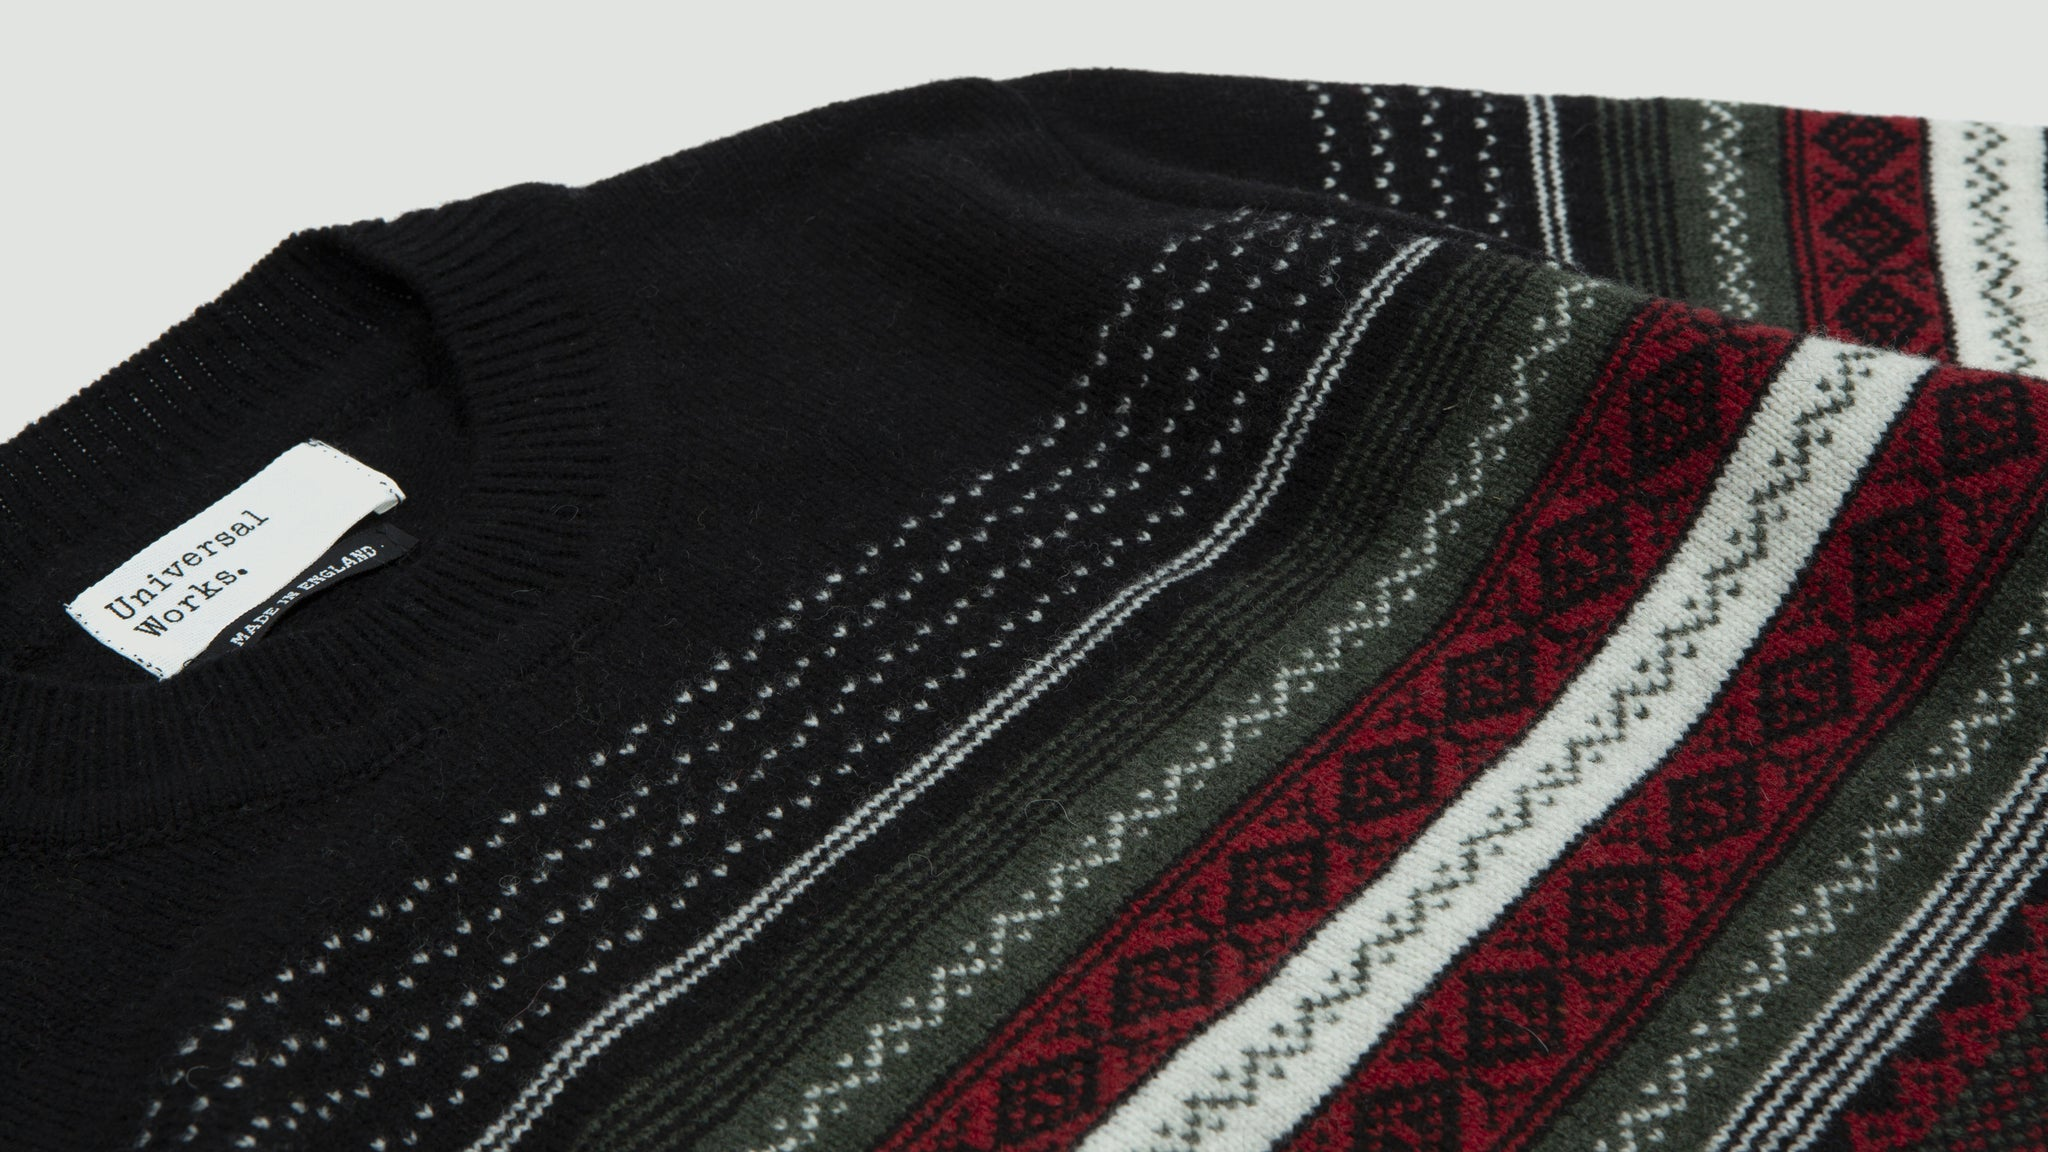 Universal Works. Crew neck fair isle mix black